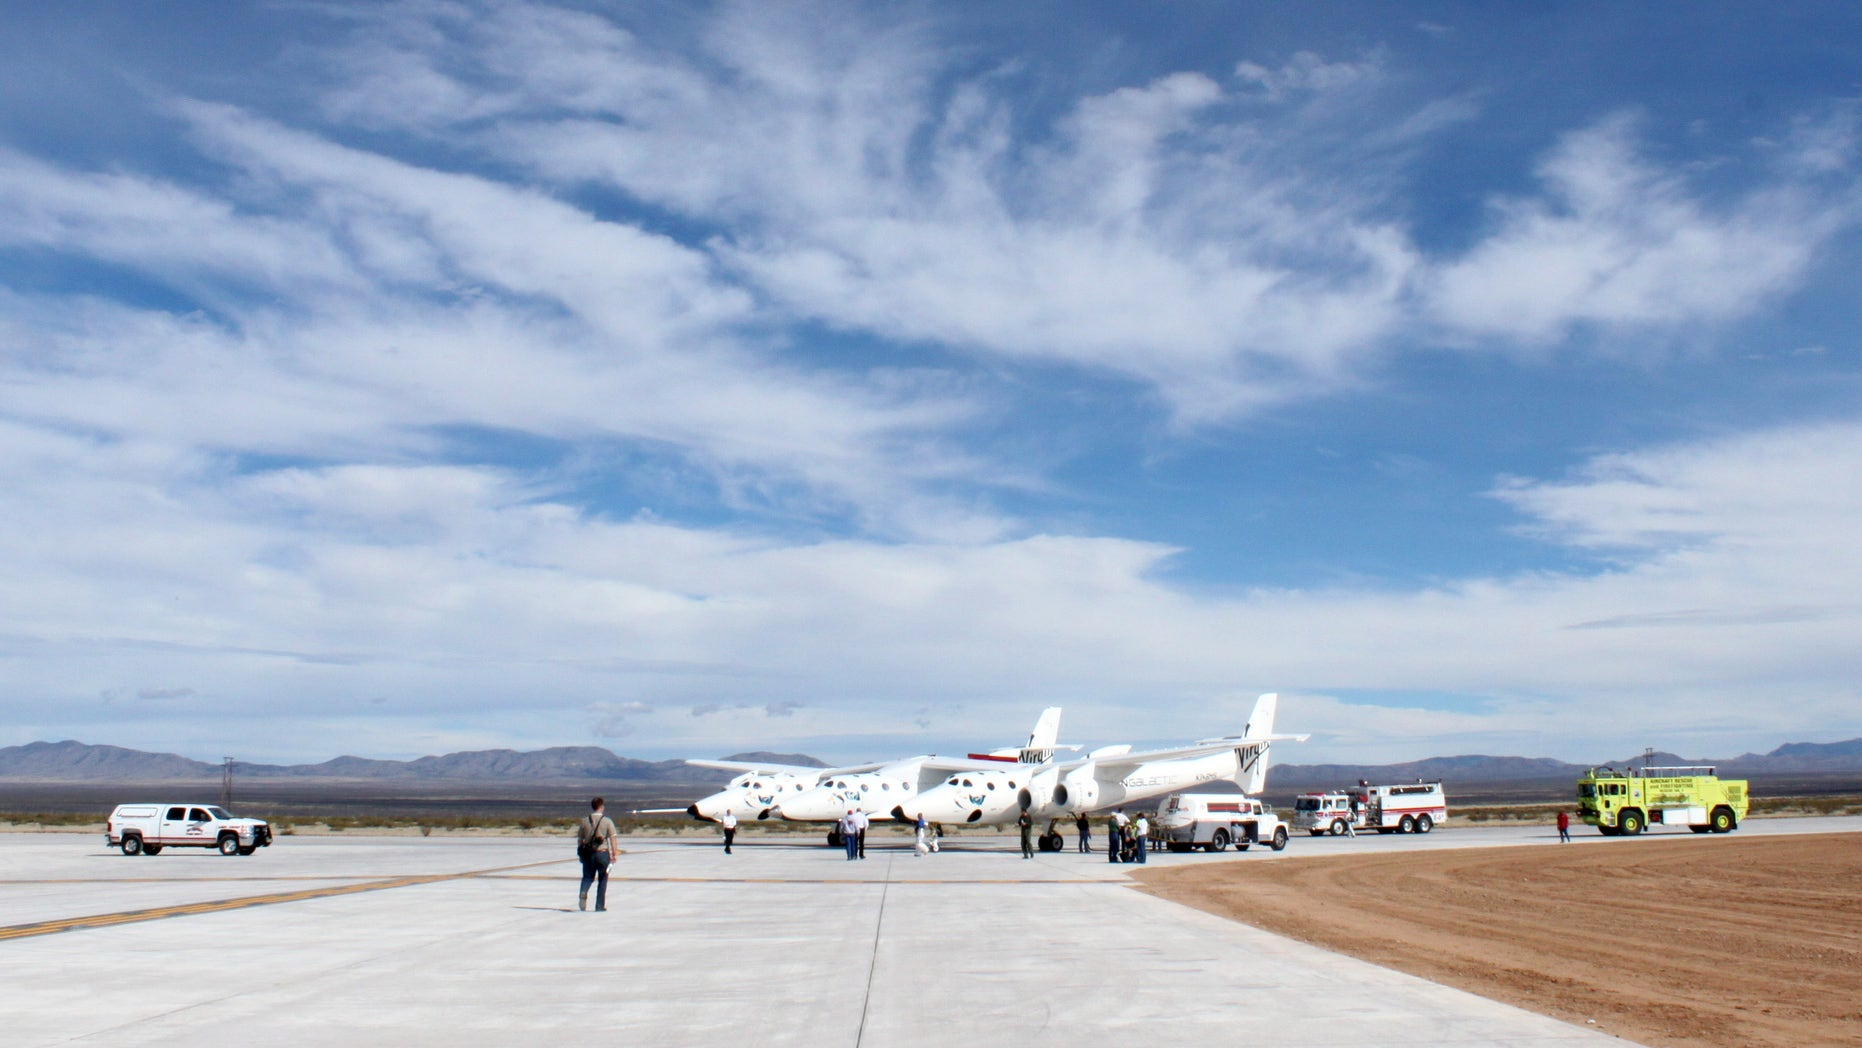 Oct. 22, 2010: Virgin Galactic's White Knight Two mothership on the runway at Spaceport America in Upham, N.M.